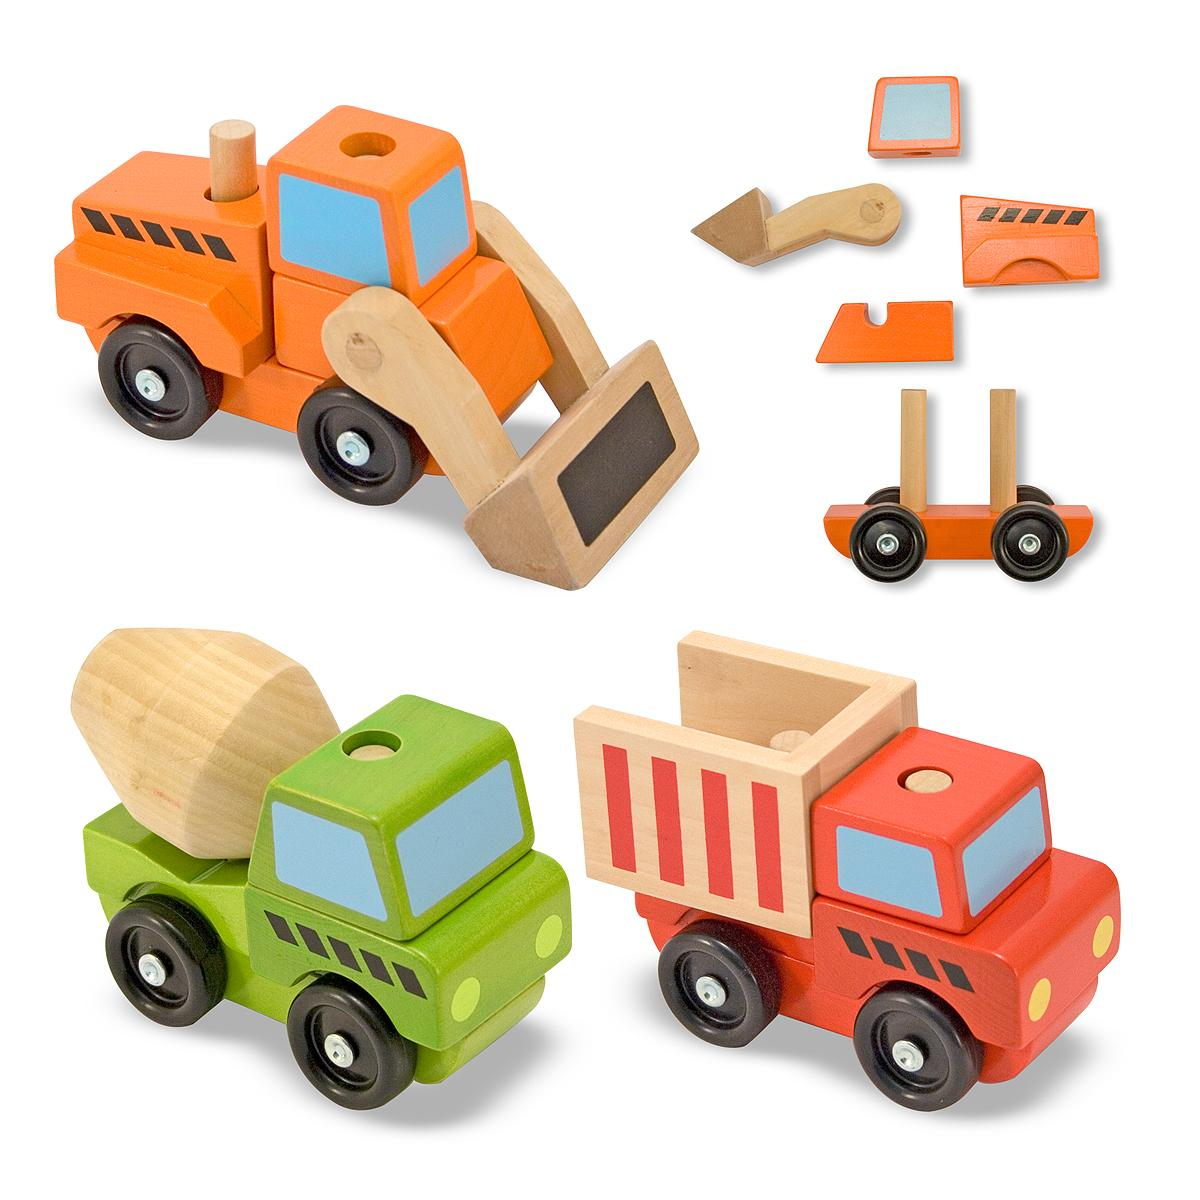 How To Draw For Kids Heavy Construction Vehicles as well 1967 DODGE D 100 CUSTOM PICKUP 131333 as well 12500767 moreover B000VNZTQQ additionally News items. on orange dump truck